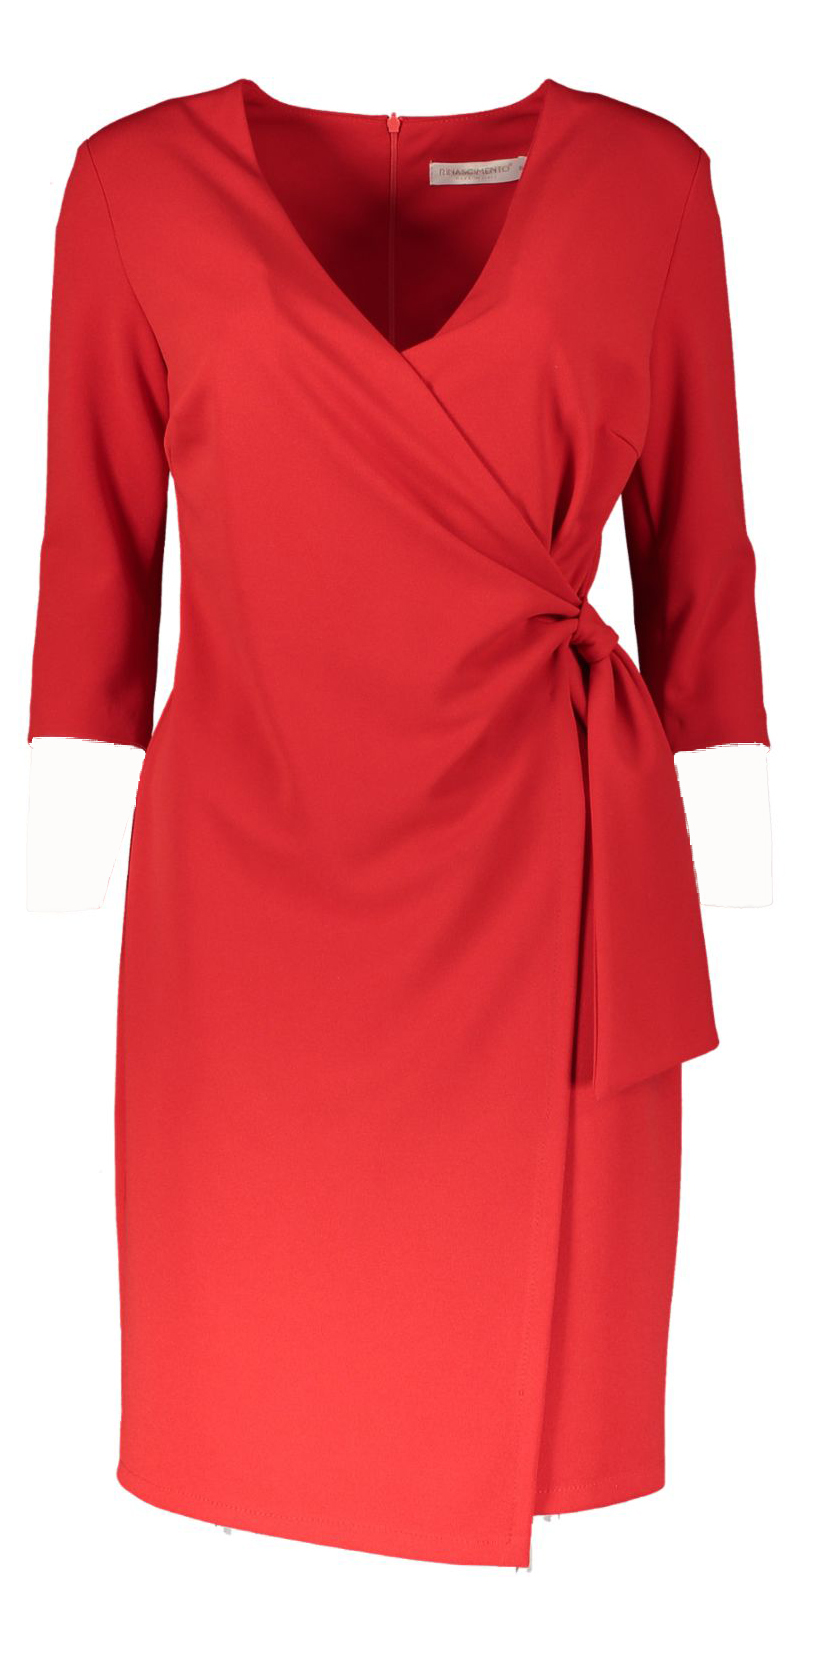 wrap dress red _Front_M1500x15000JPG